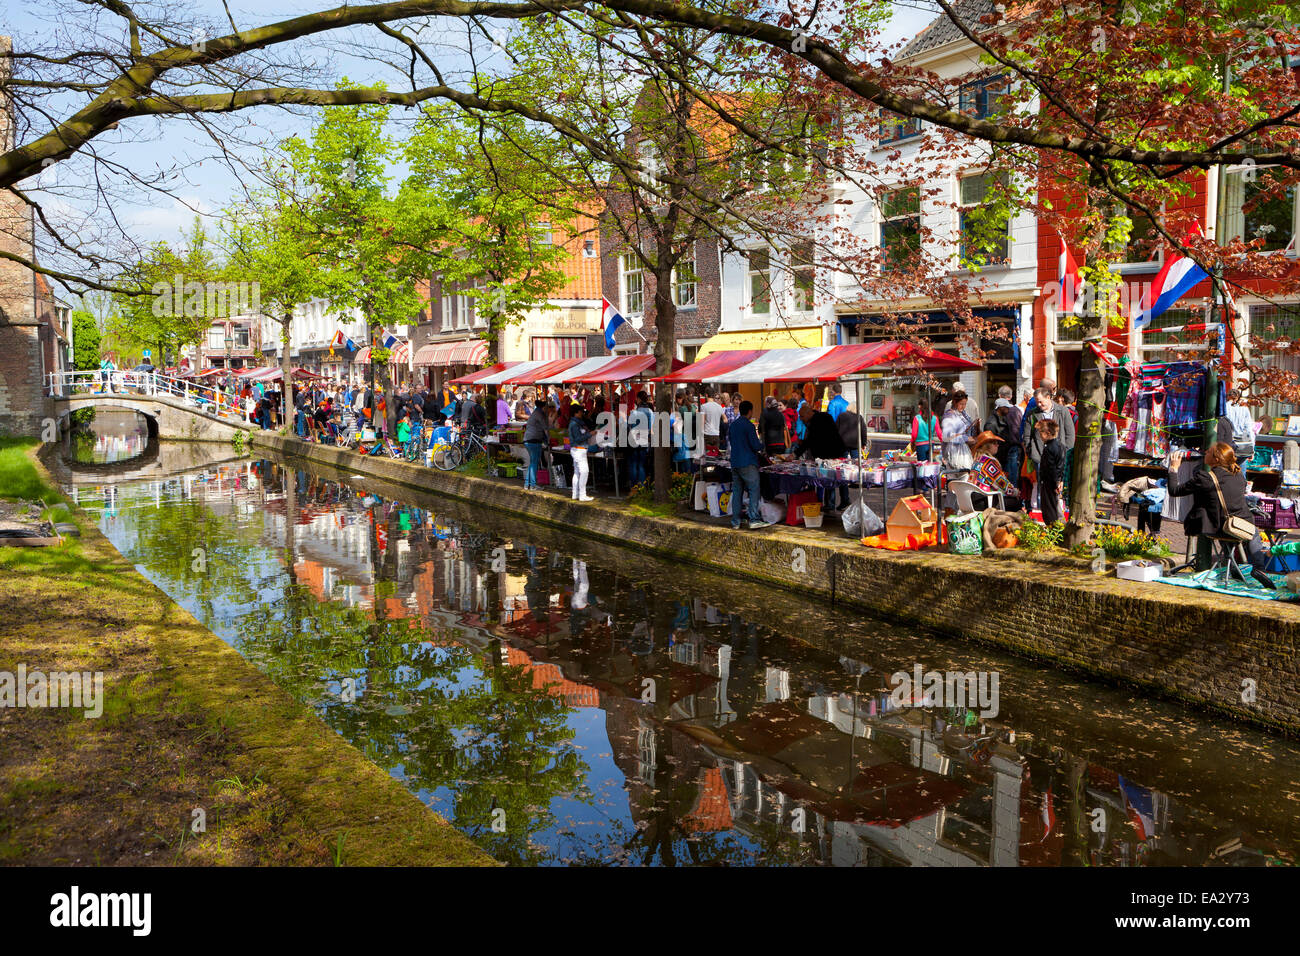 King's Day Flea Market along a canal, Delft, South Holland, Netherlands, Europe - Stock Image